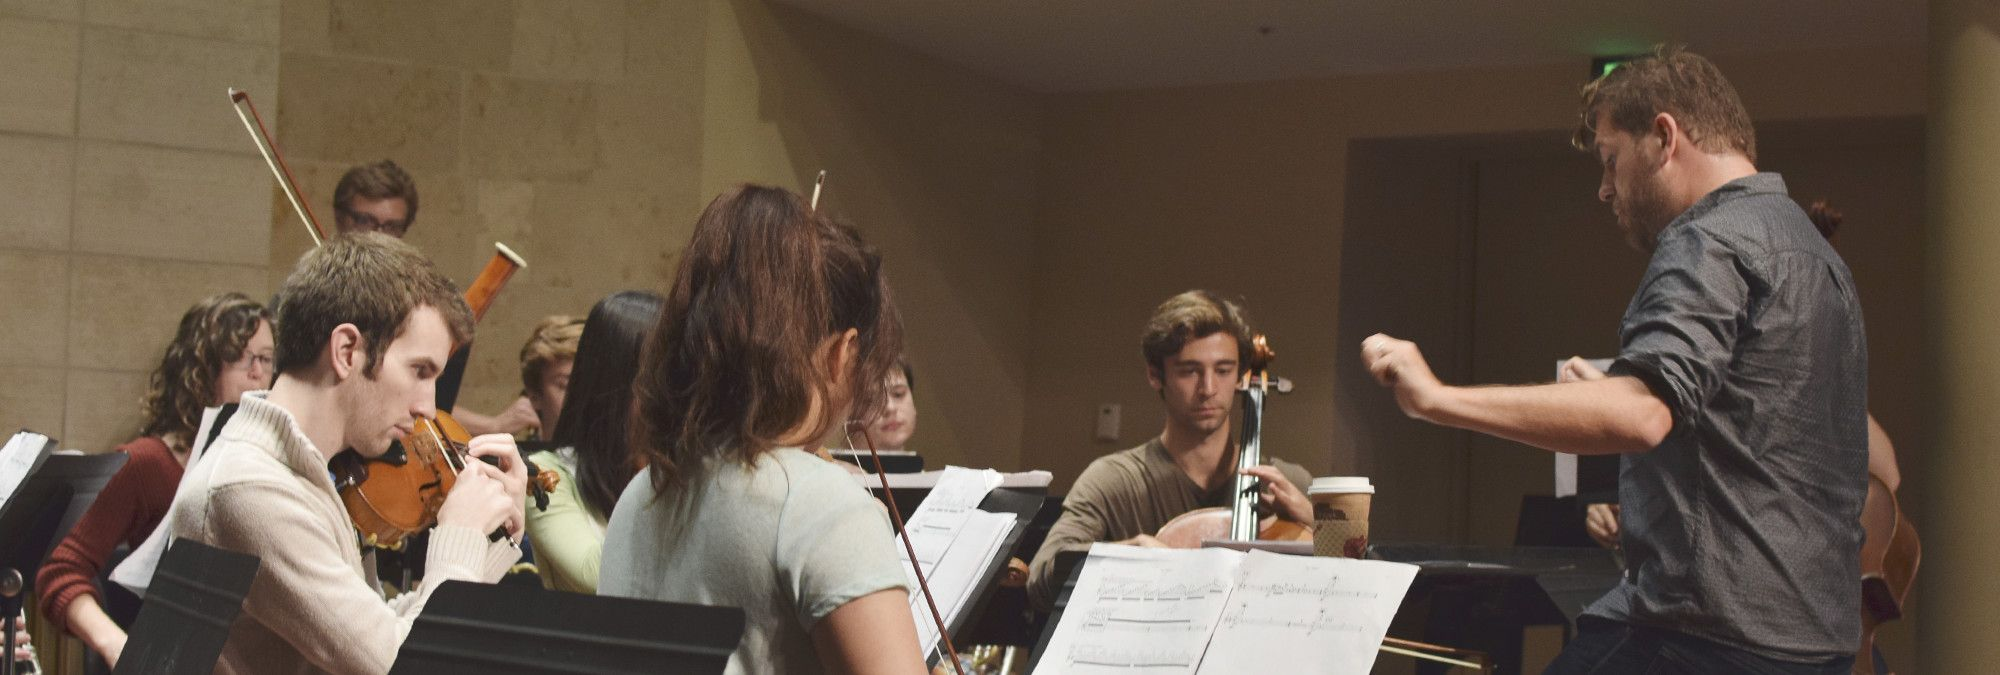 Students in a chamber music practice